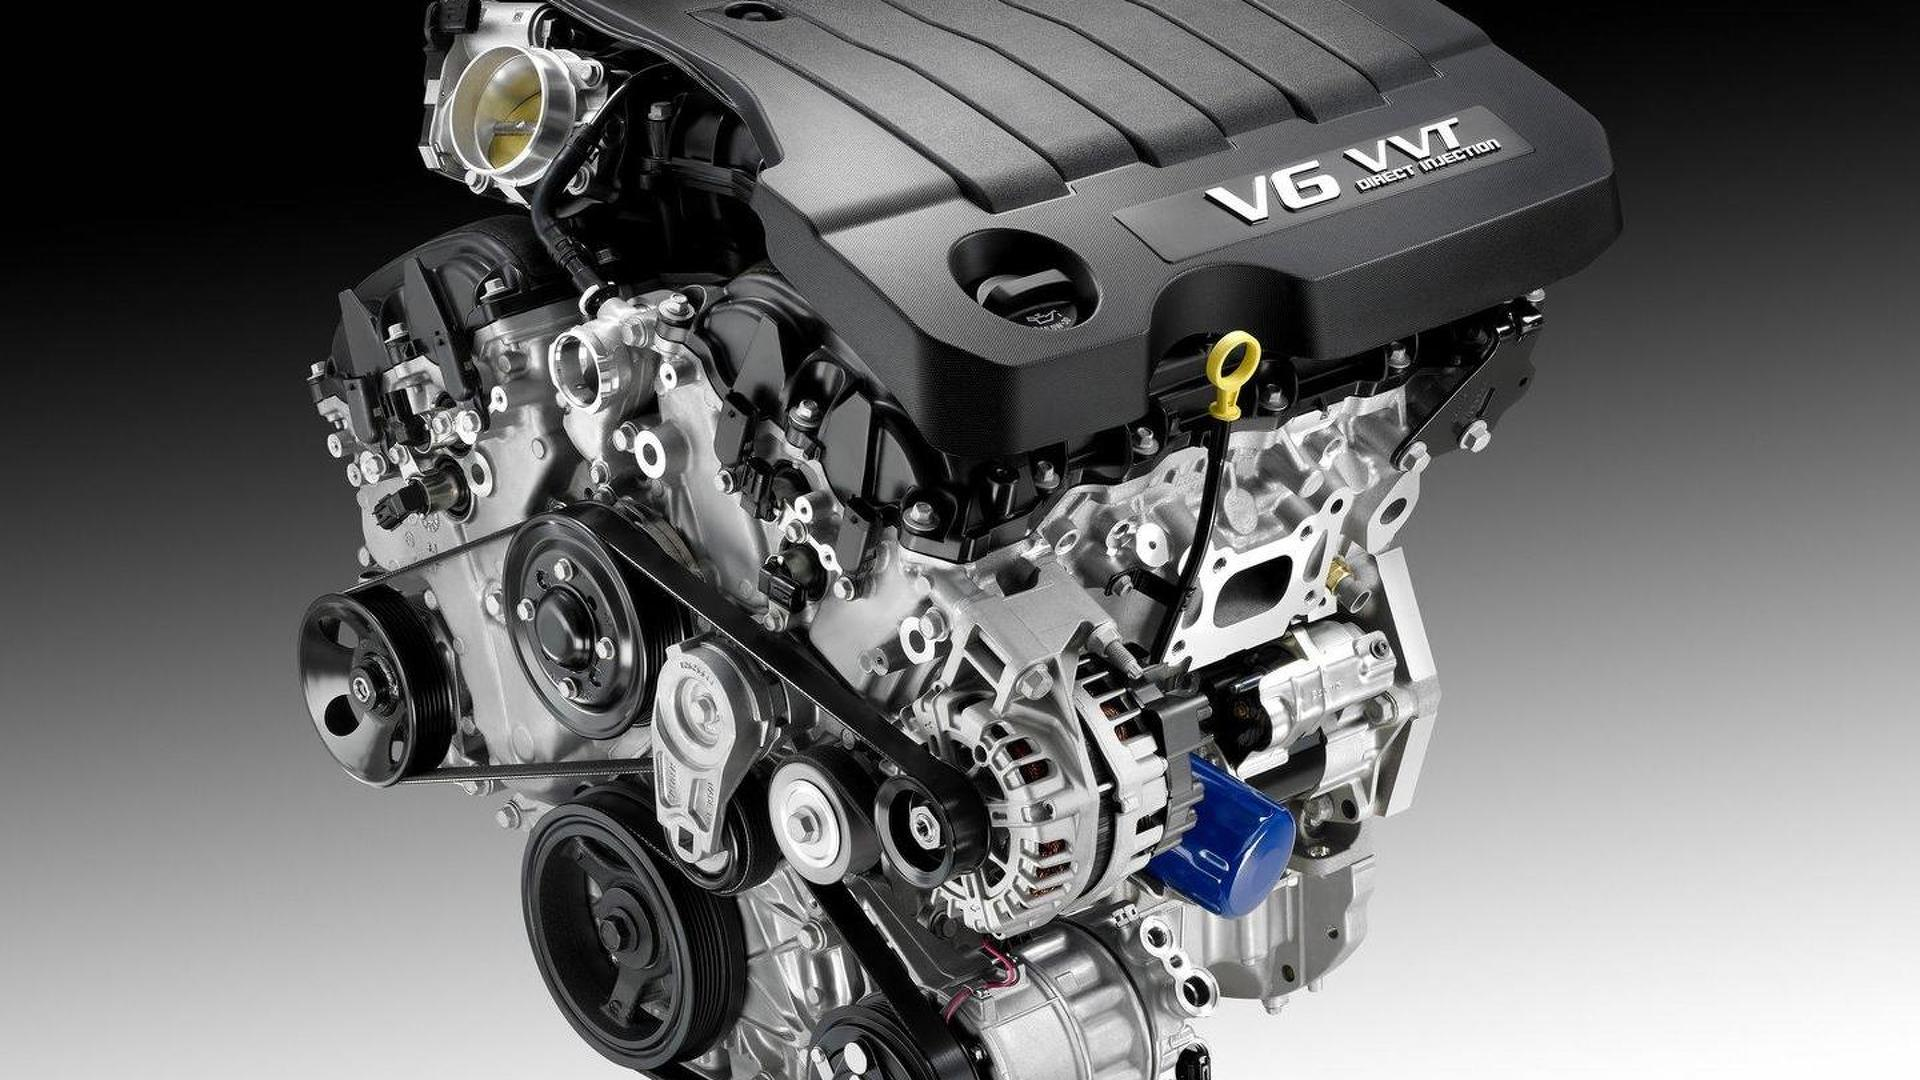 2012 Buick LaCrosse gets new 3.6 liter V6 [video]